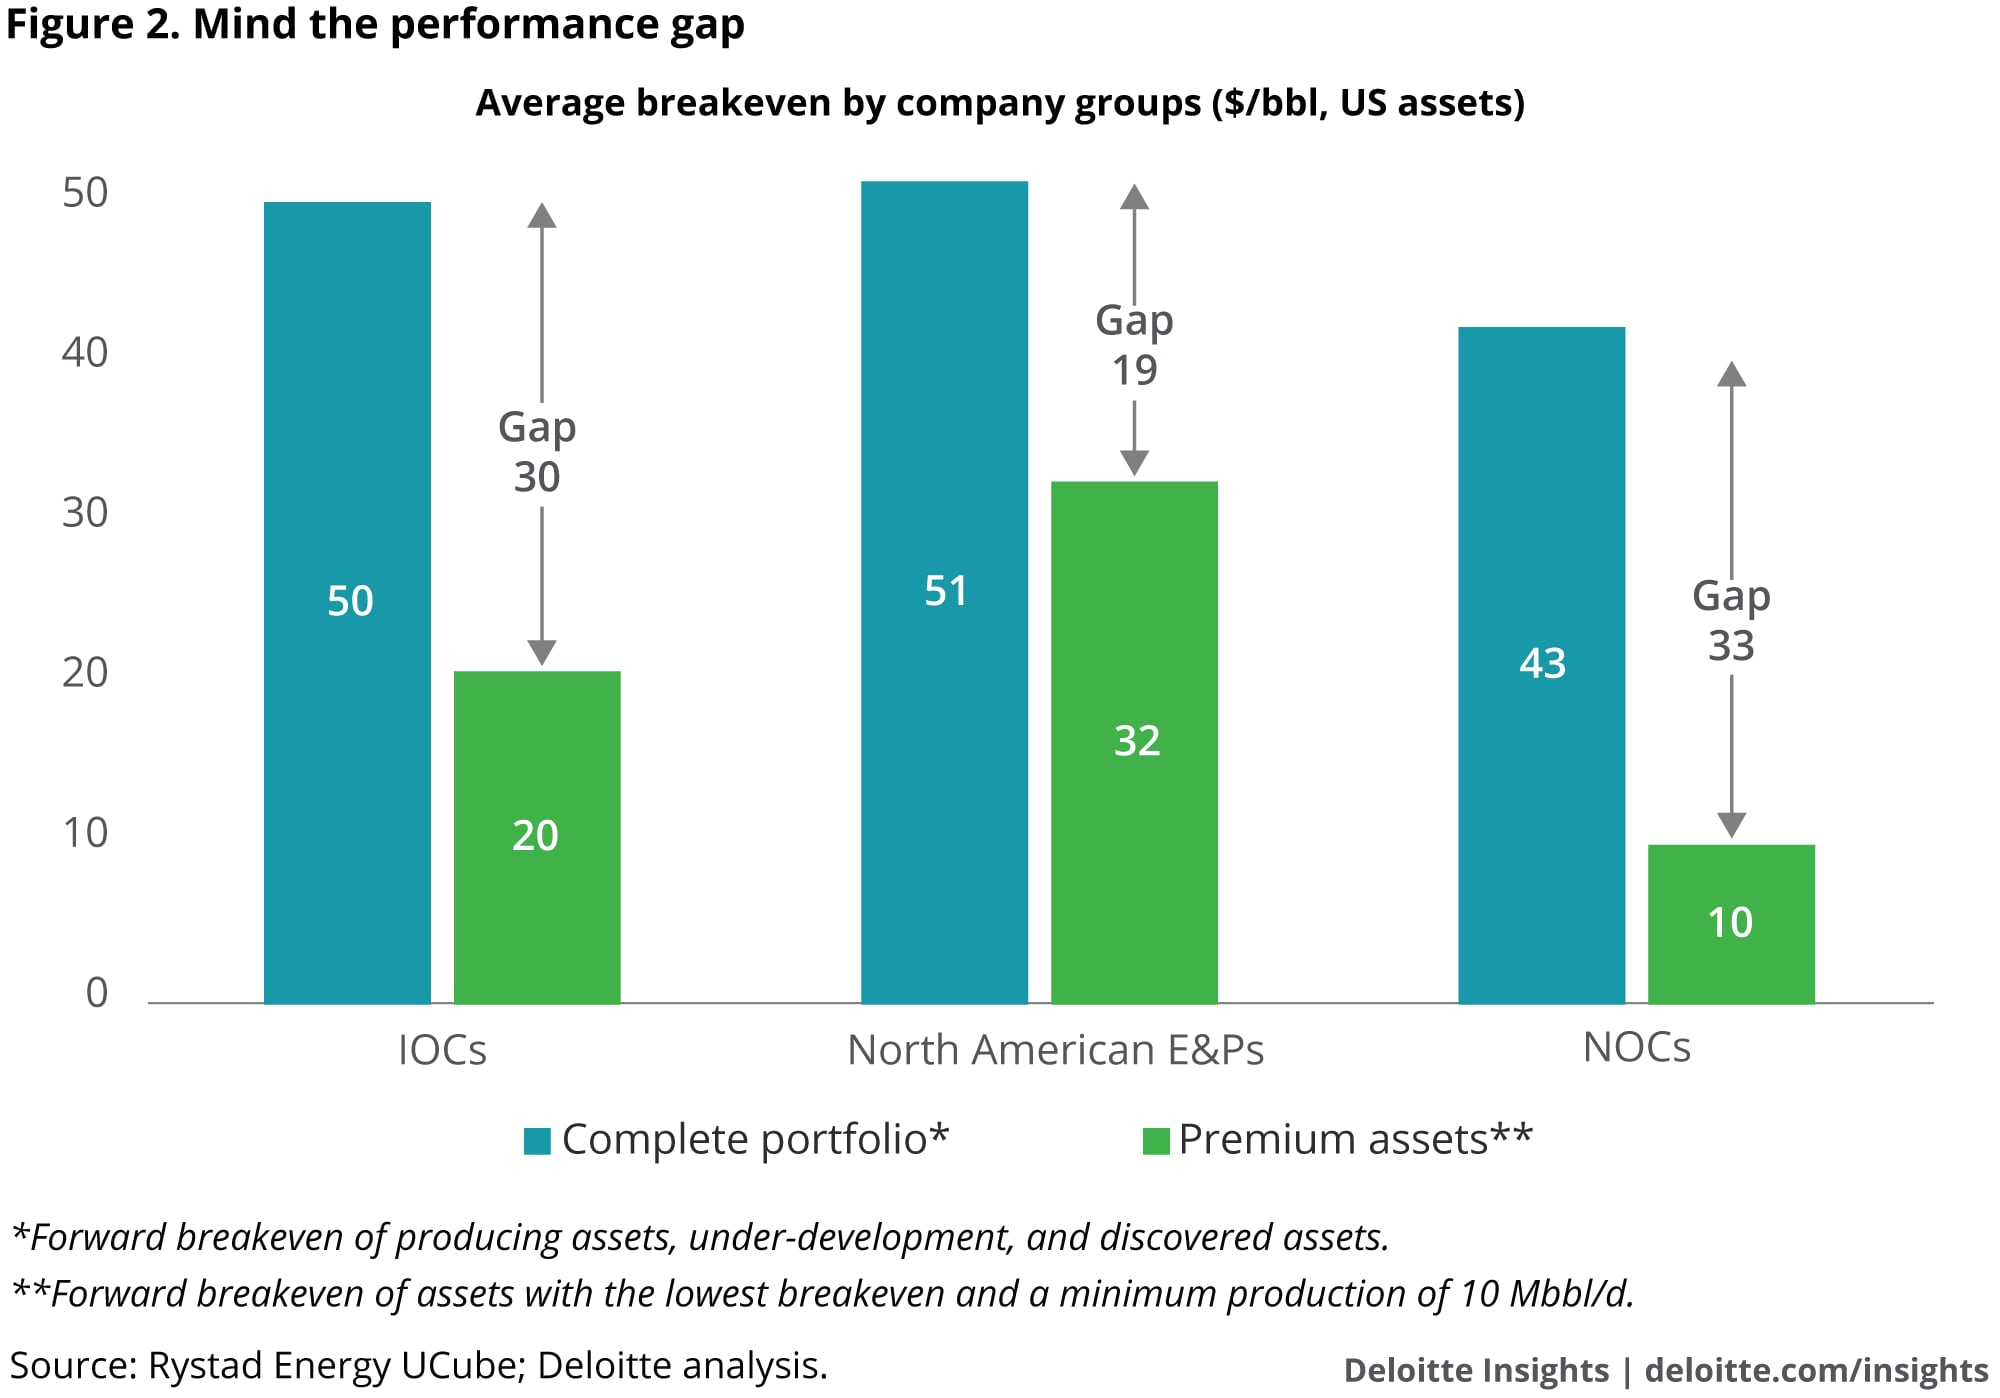 Mind the performance gap